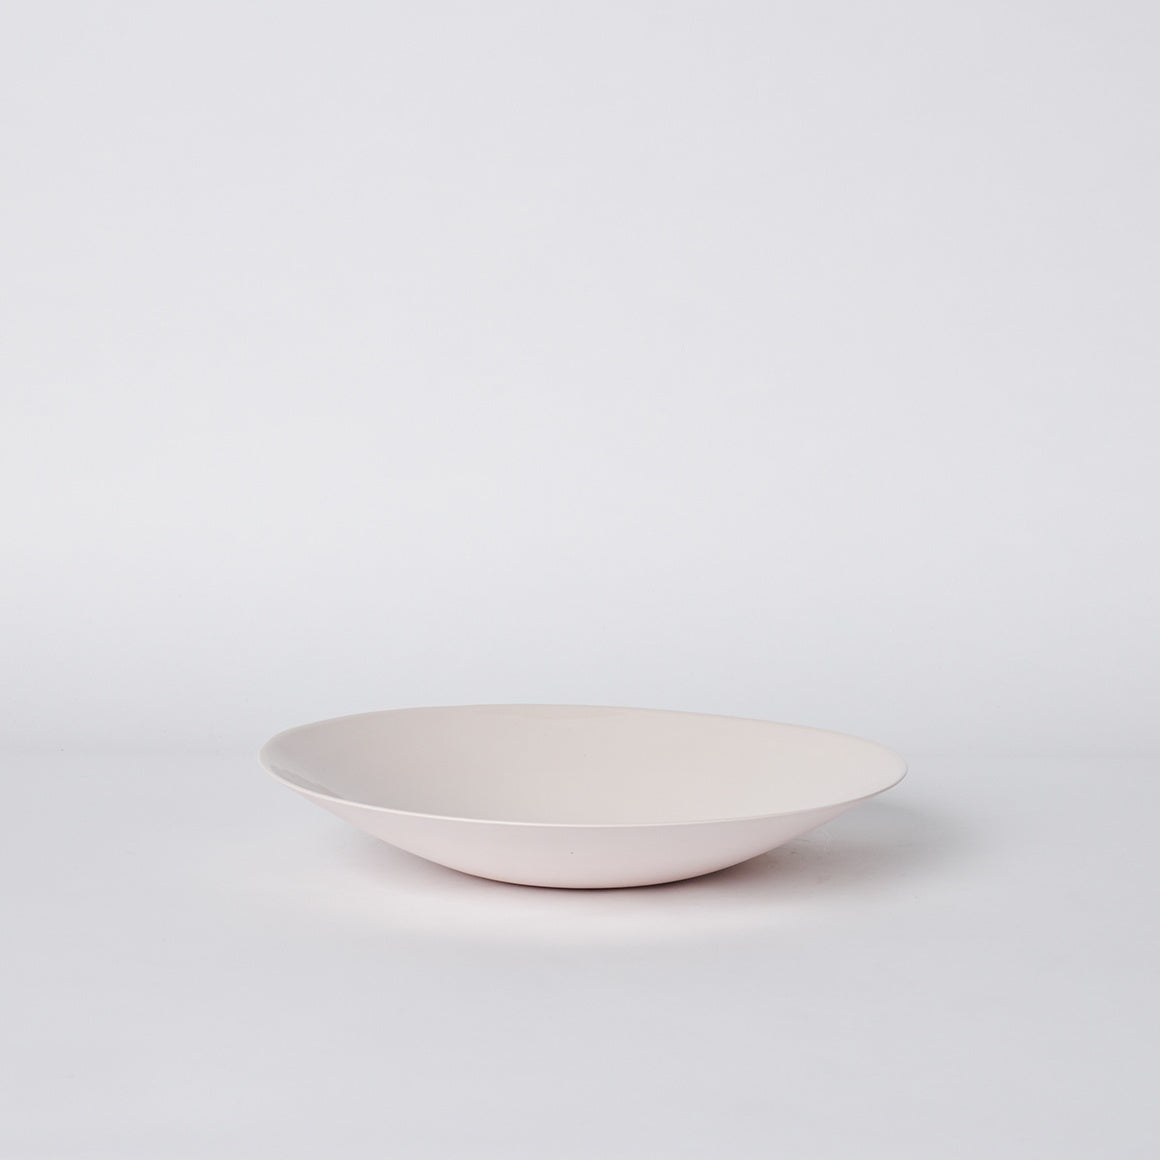 MUD AUSTRALIA-NEST BOWL - Eclectic Cool  - 5